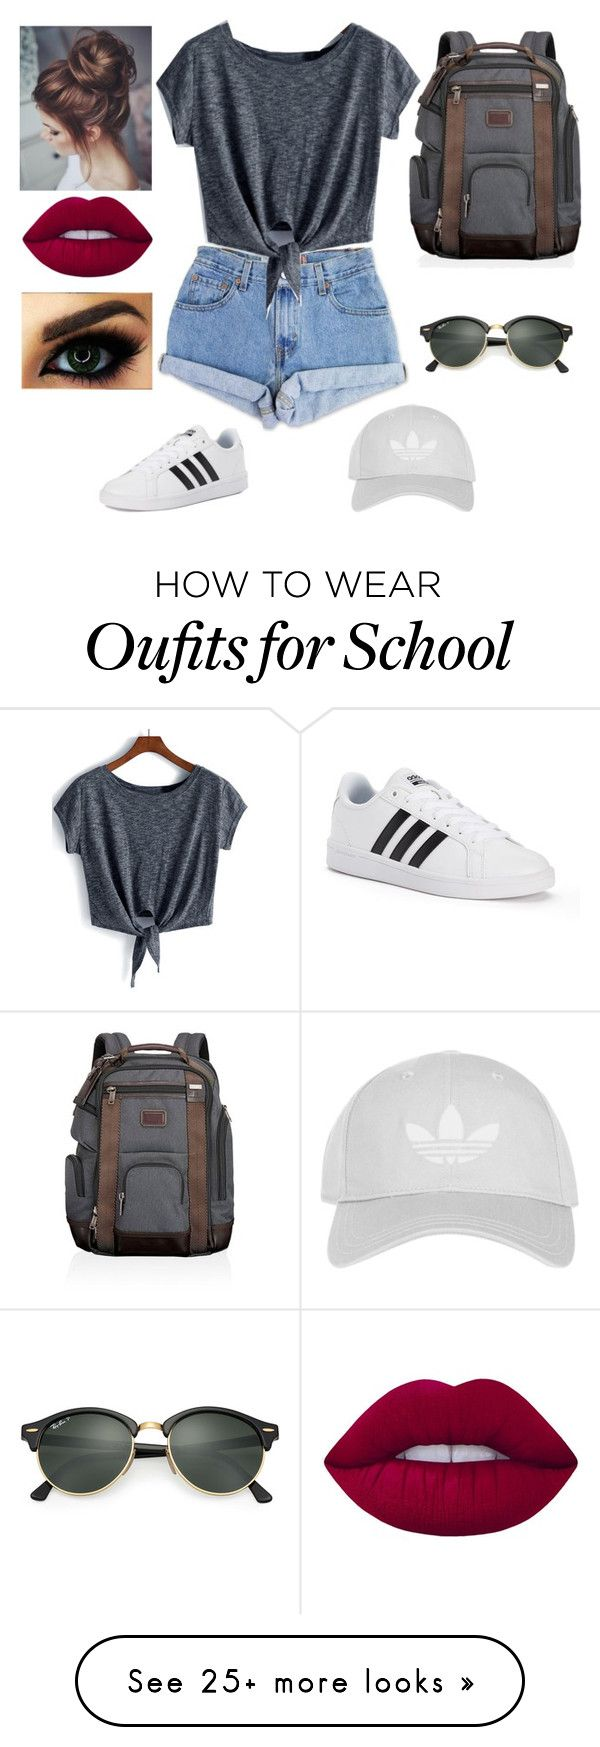 """#a normal day at school"" by al4xa on Polyvore featuring Levi's, Topshop, adidas, Ray-Ban, Lime Crime and Tumi"